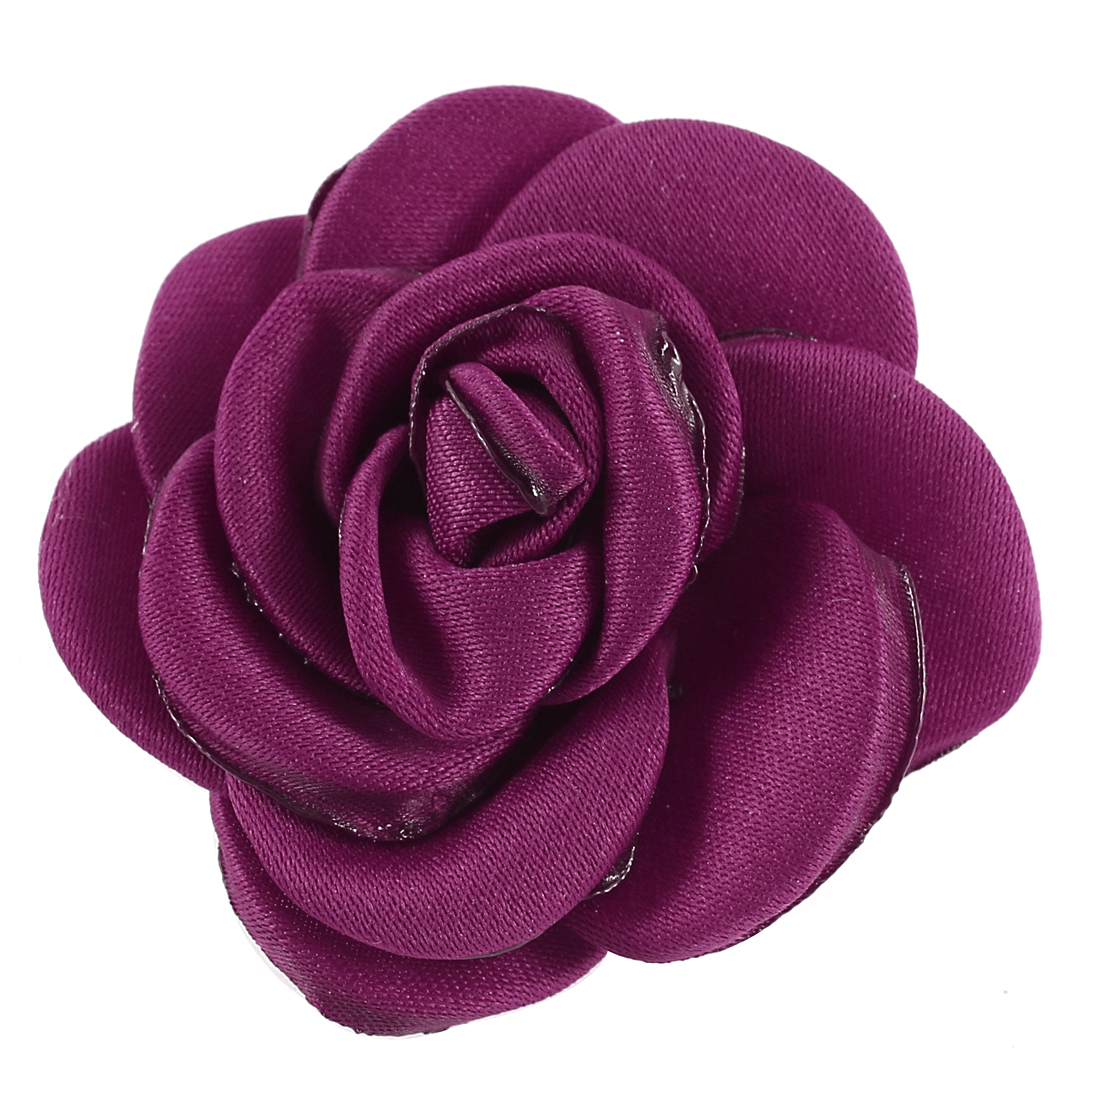 Parties Wedding Fabric Flower Shape Corsage Brooch Pin Red for Lady